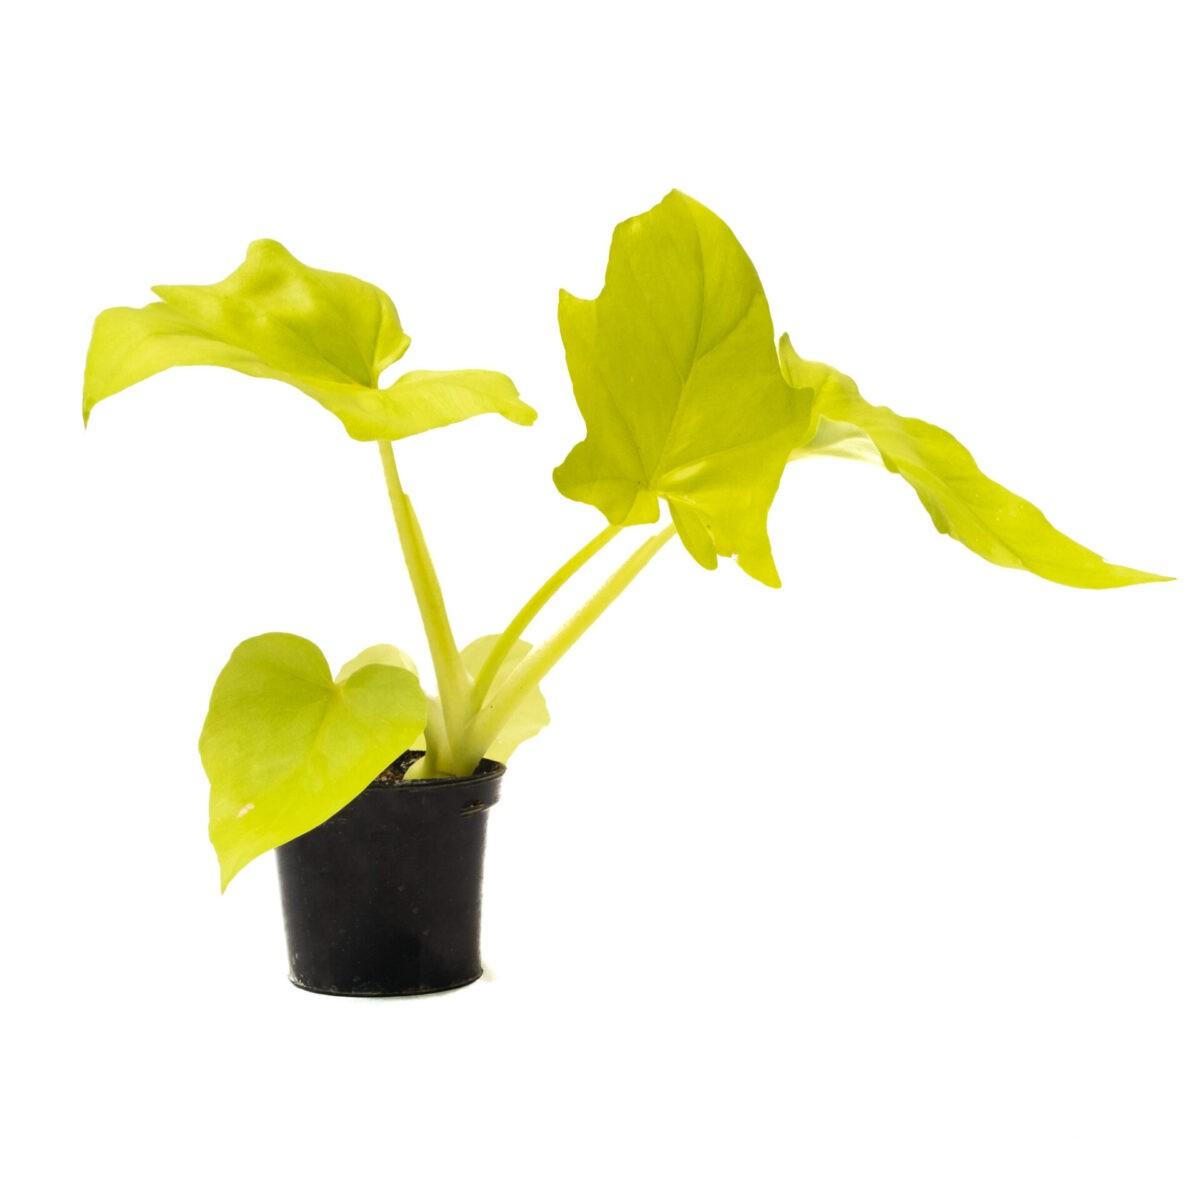 TheBaghStore Philodendron Selloum